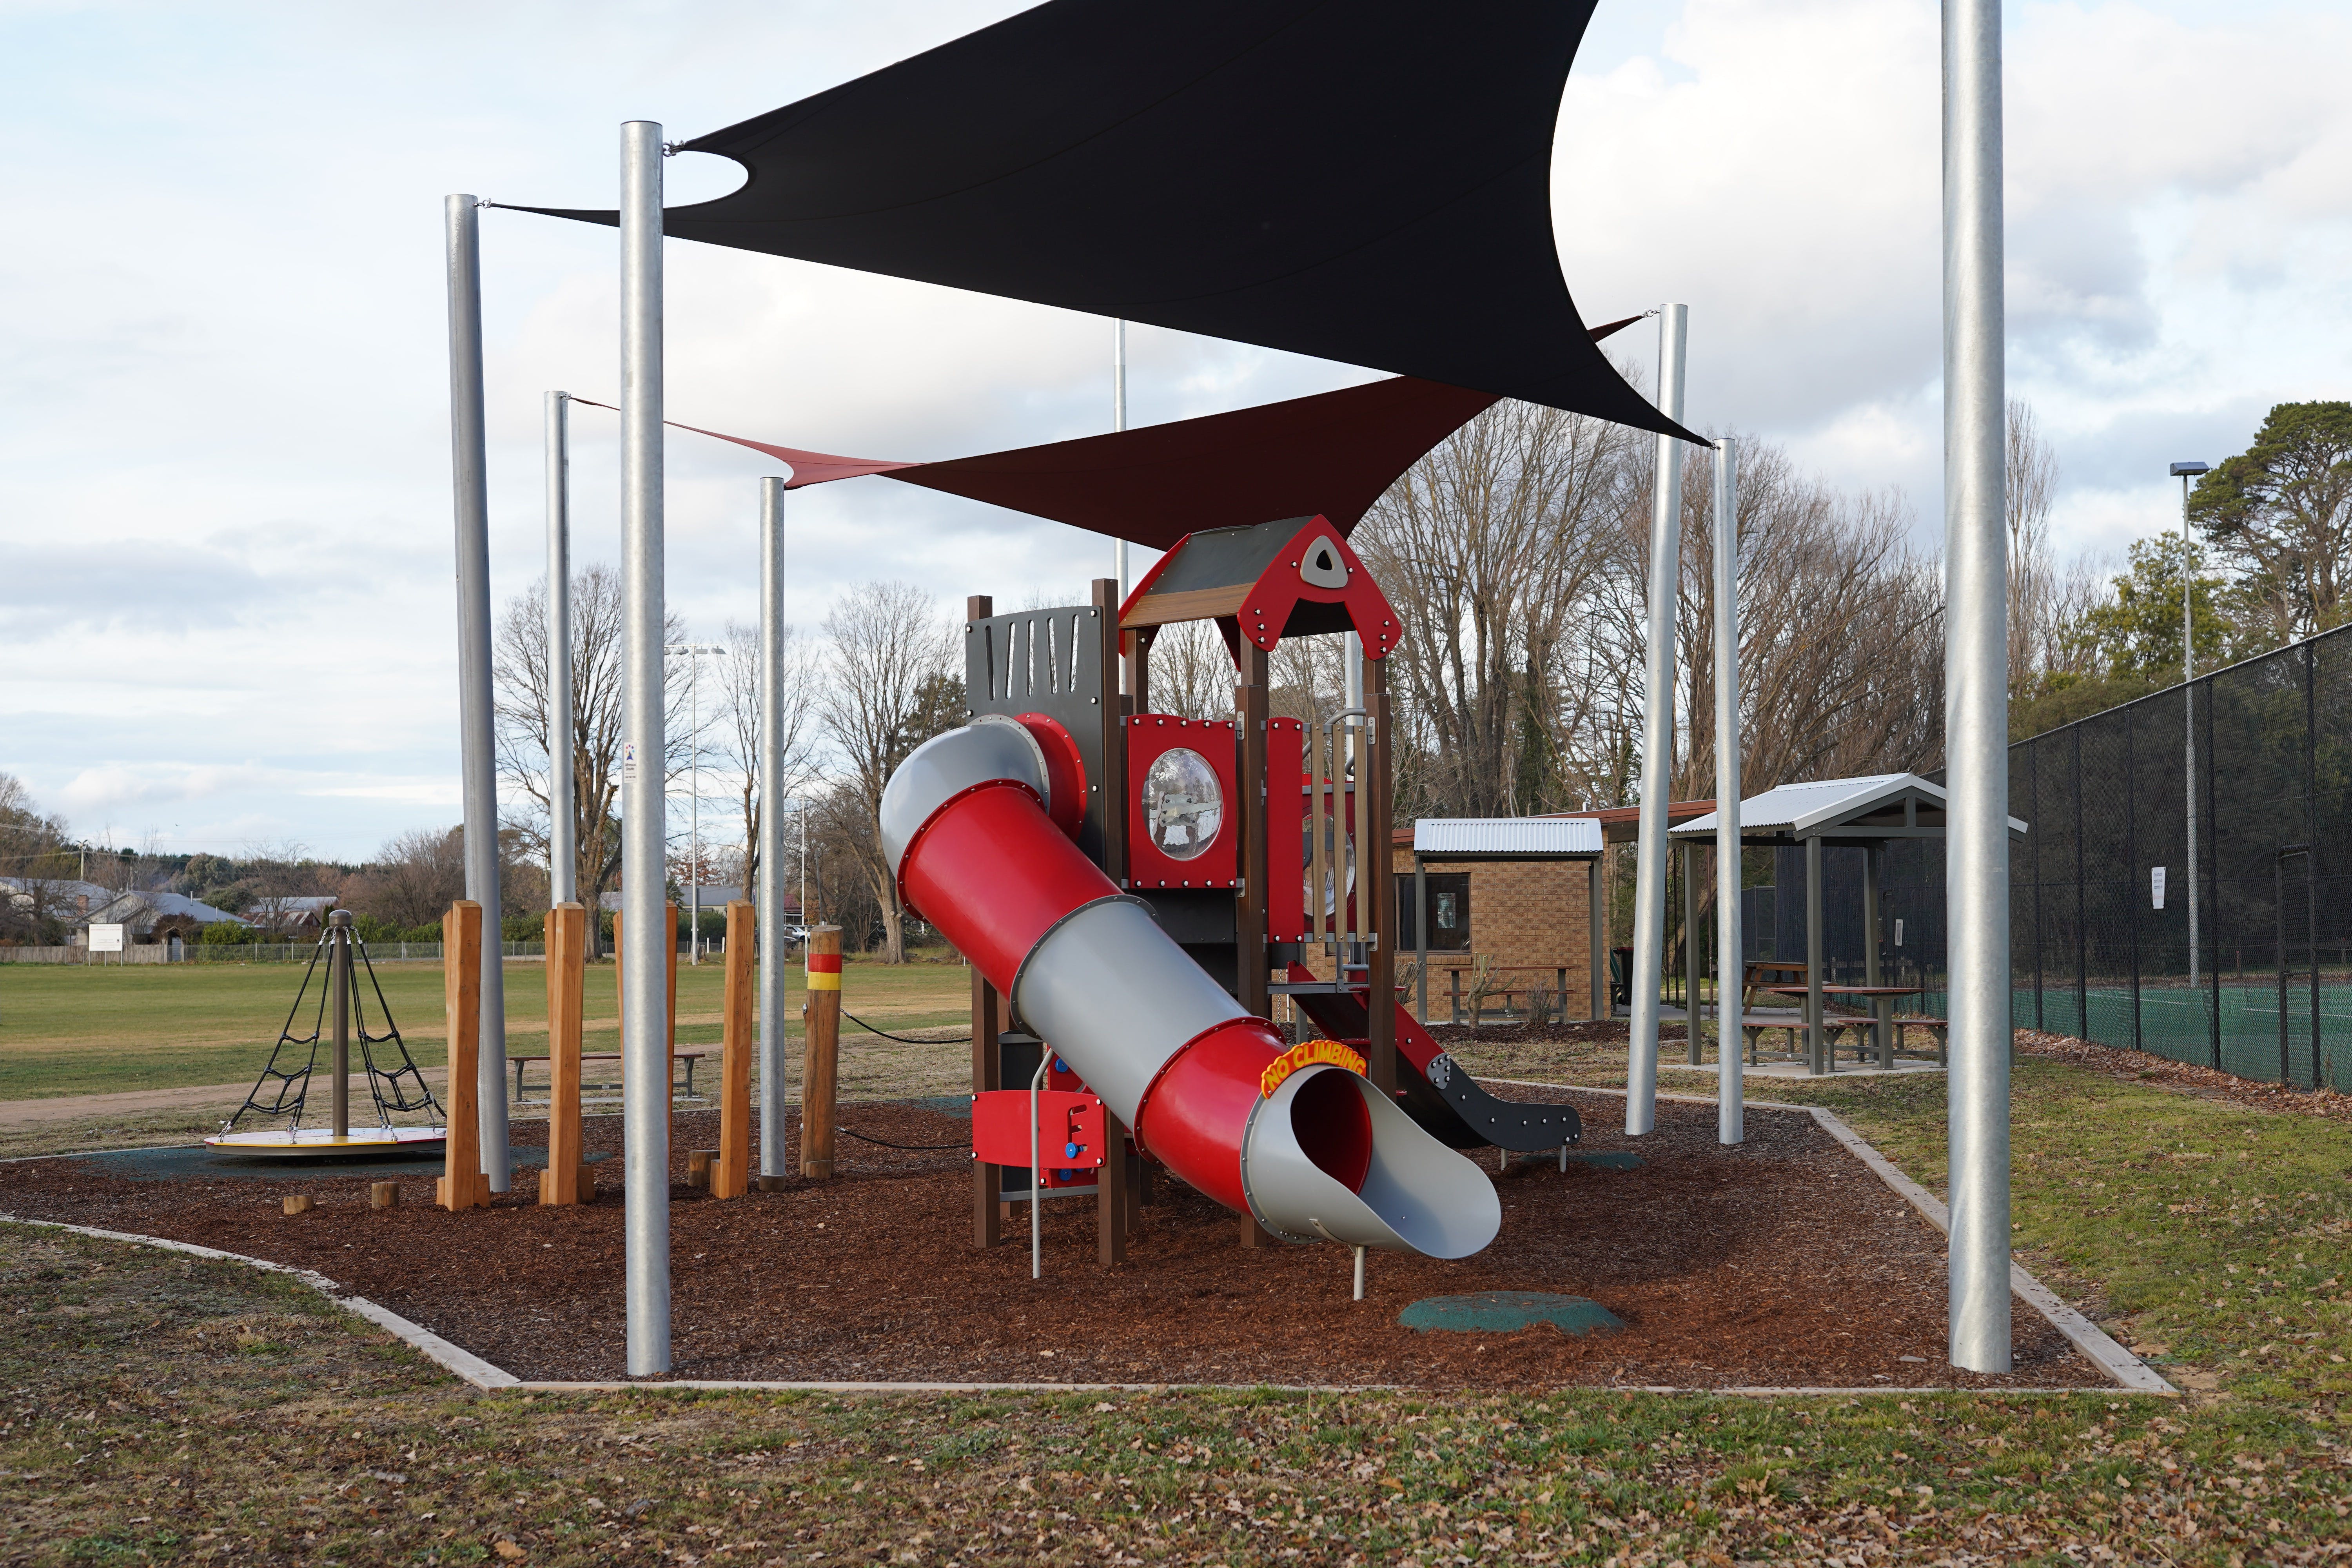 Braidwood Recreation Grounds and Playground - Accommodation Great Ocean Road